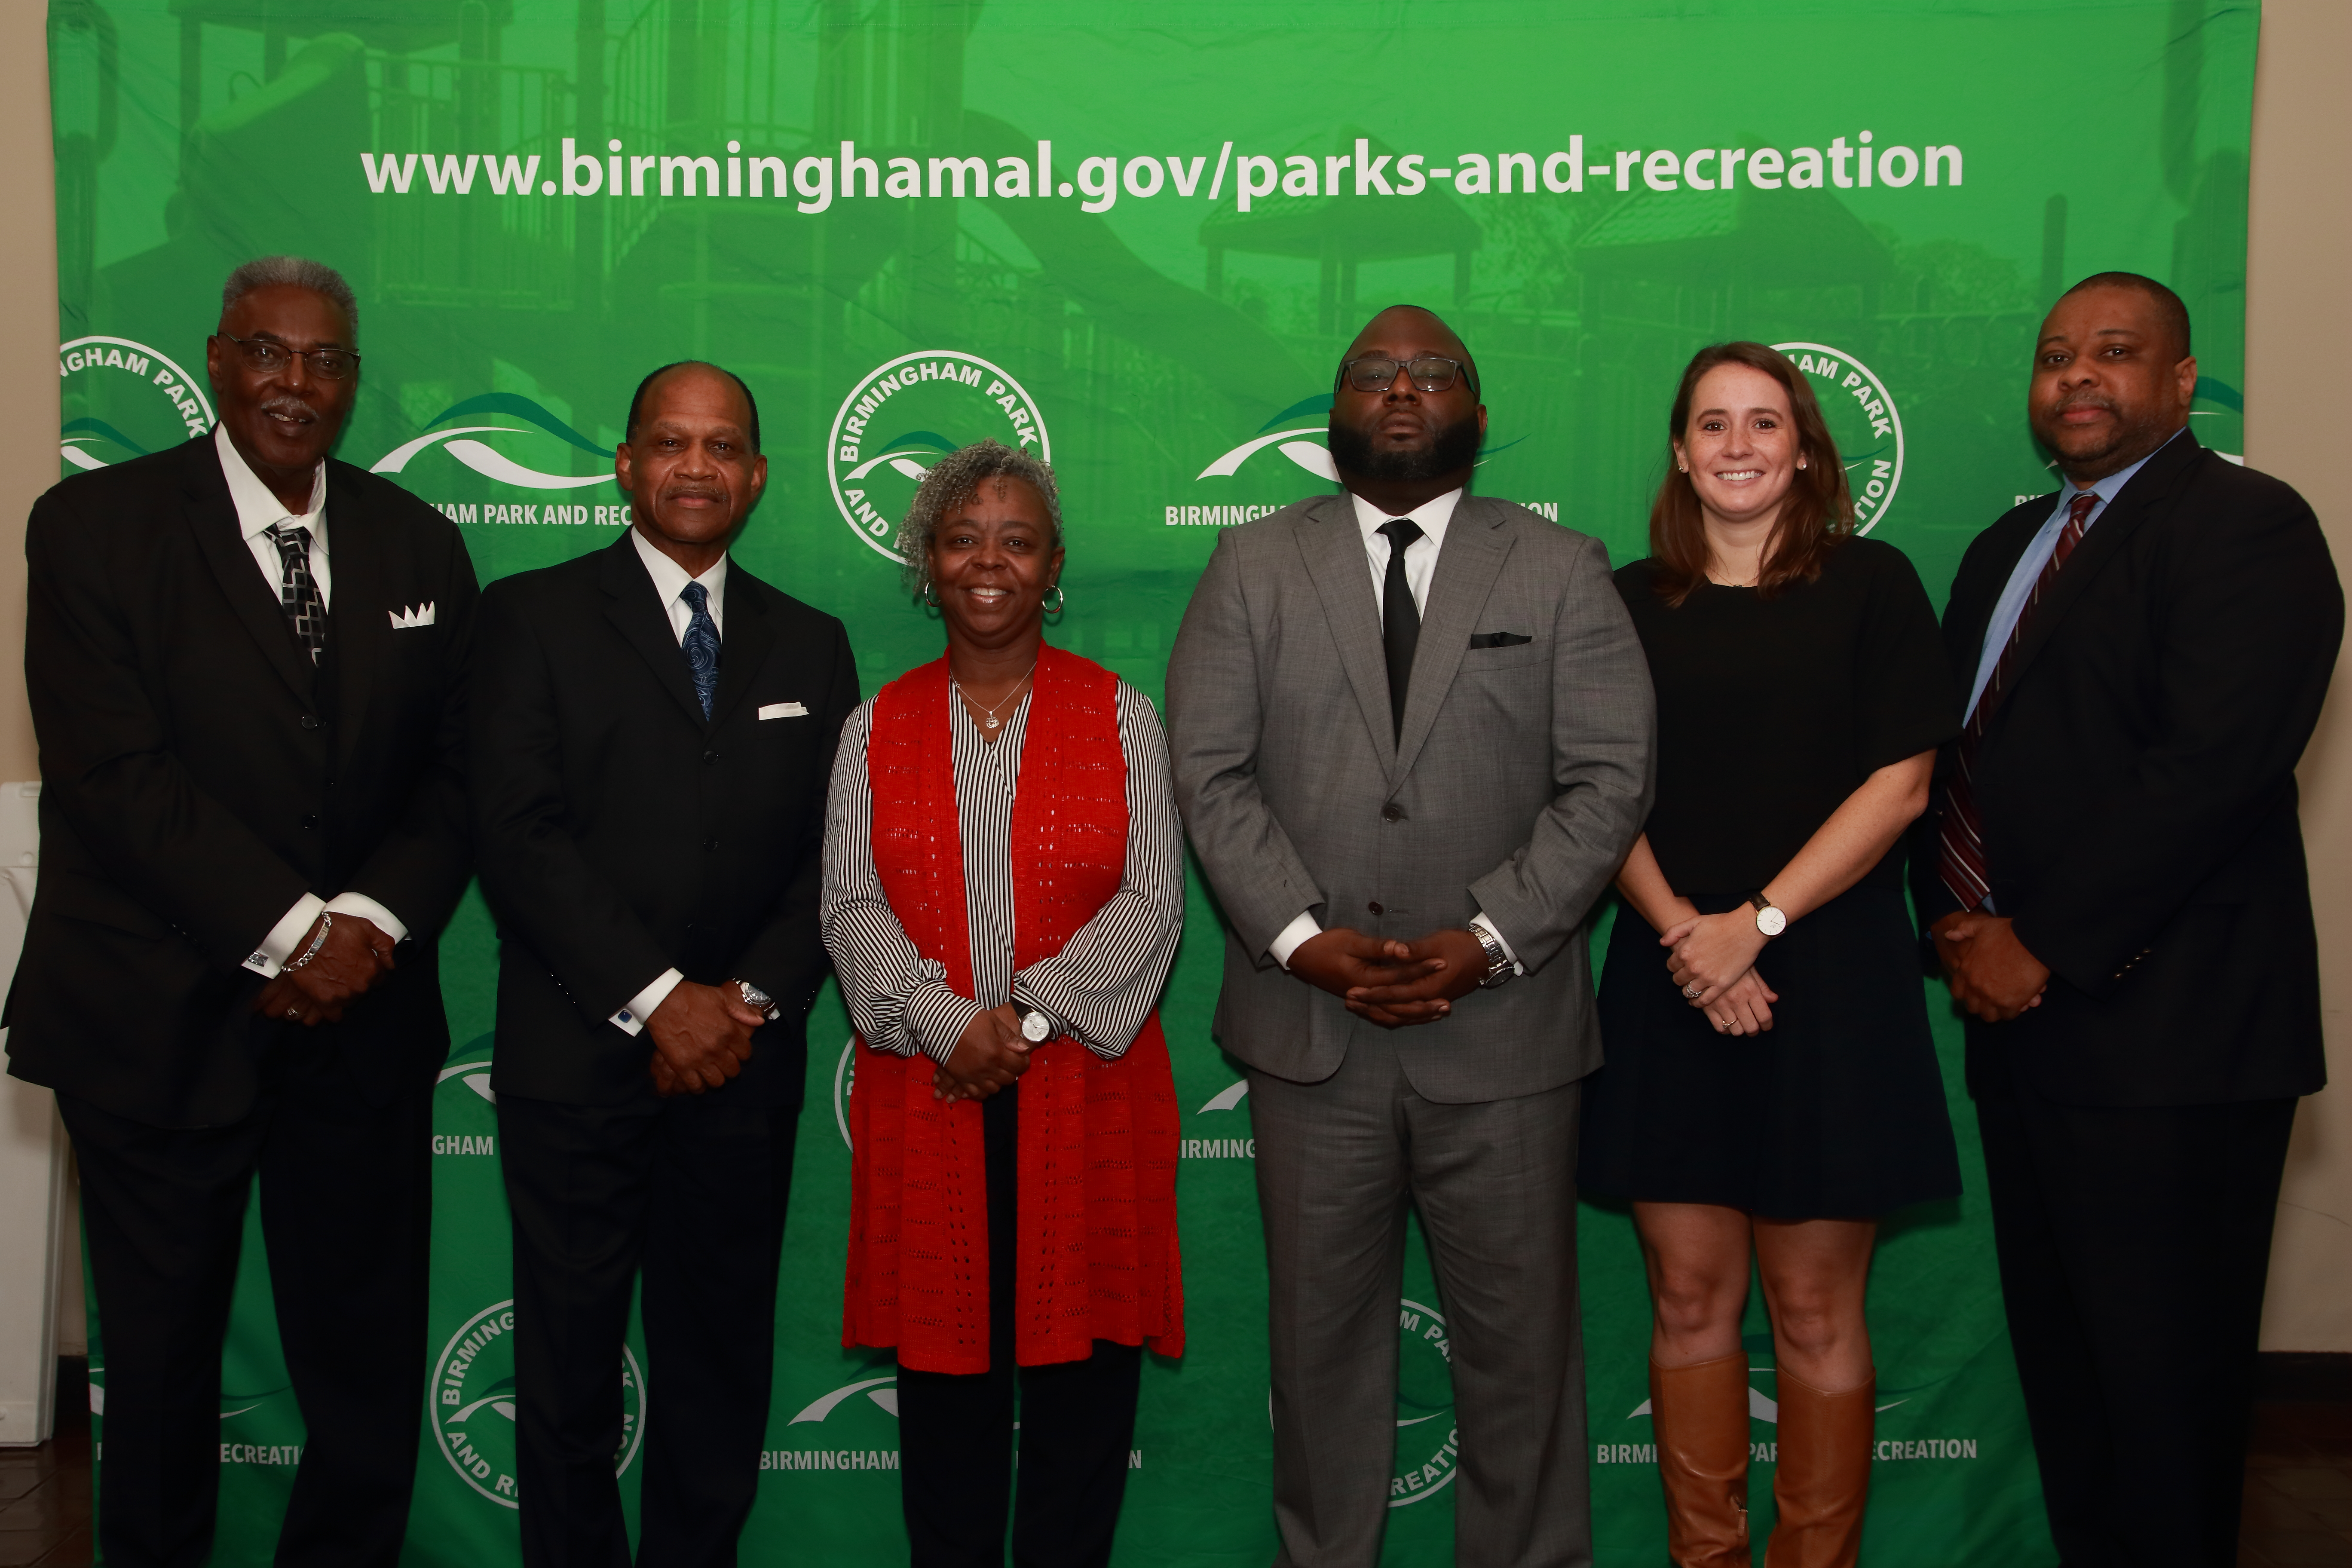 Parks and Recreation - The Official Website for the City of